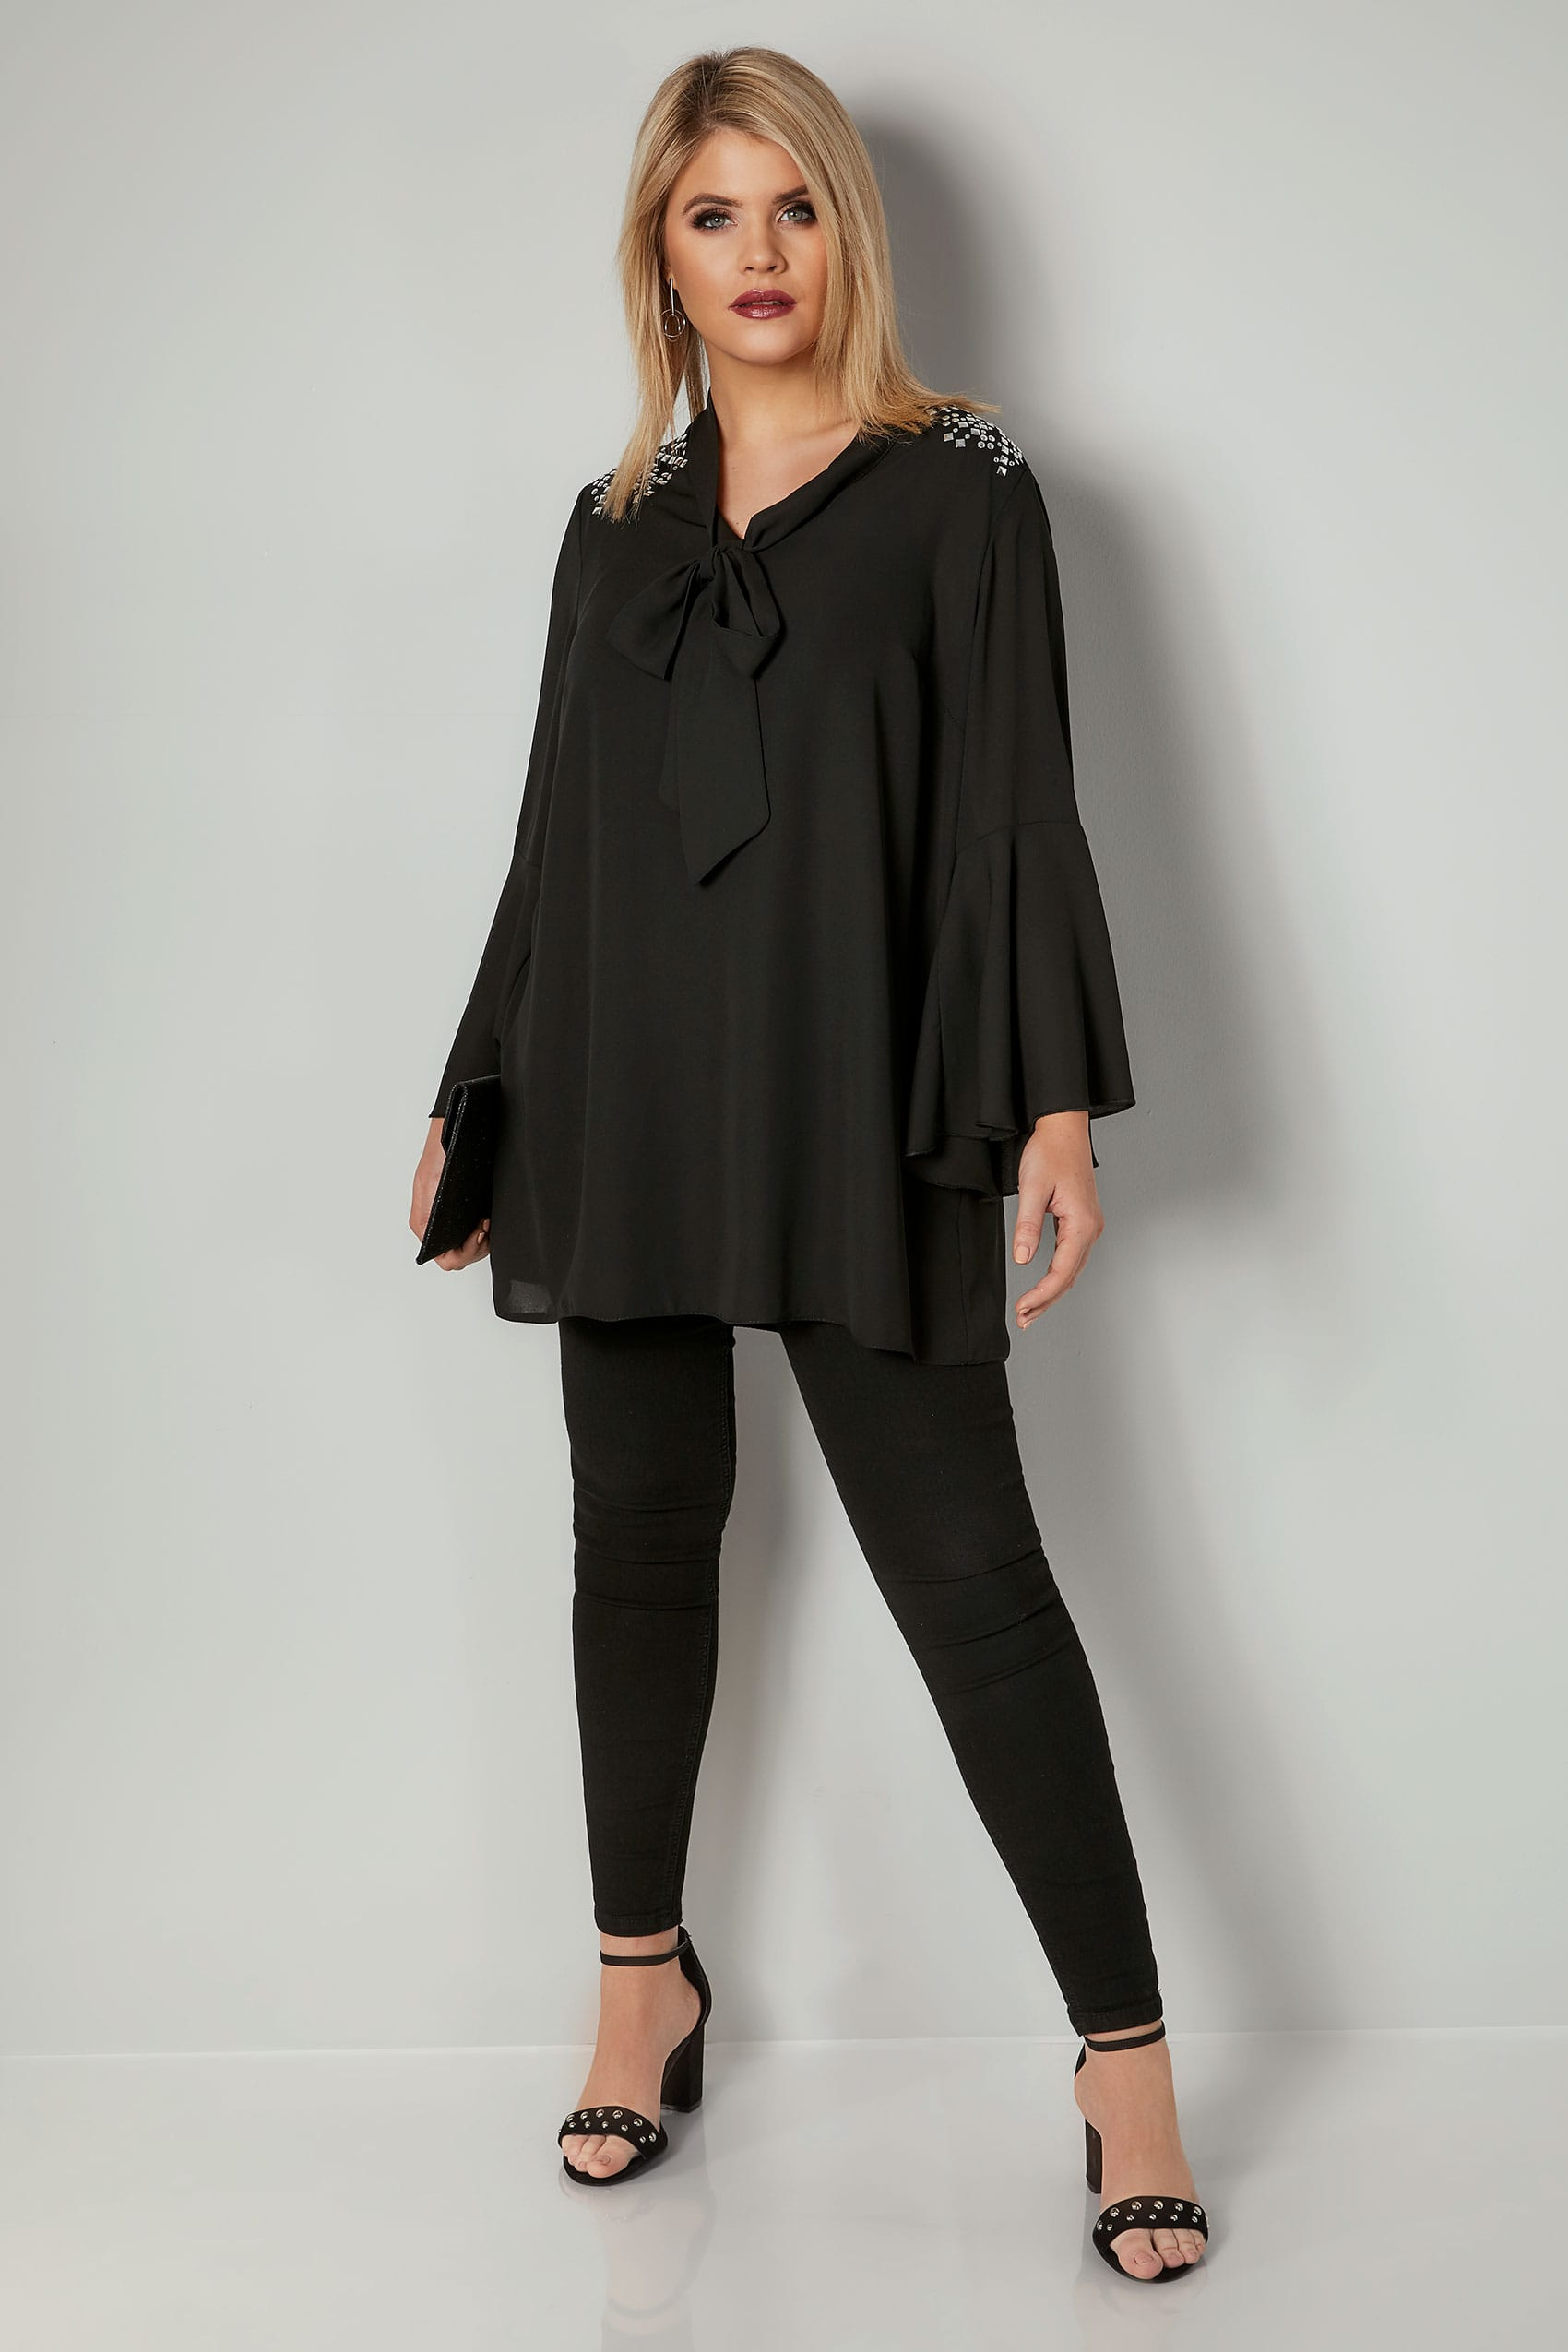 Blouse noire avec noeud ornements paules taille 44 62 for Background images in div